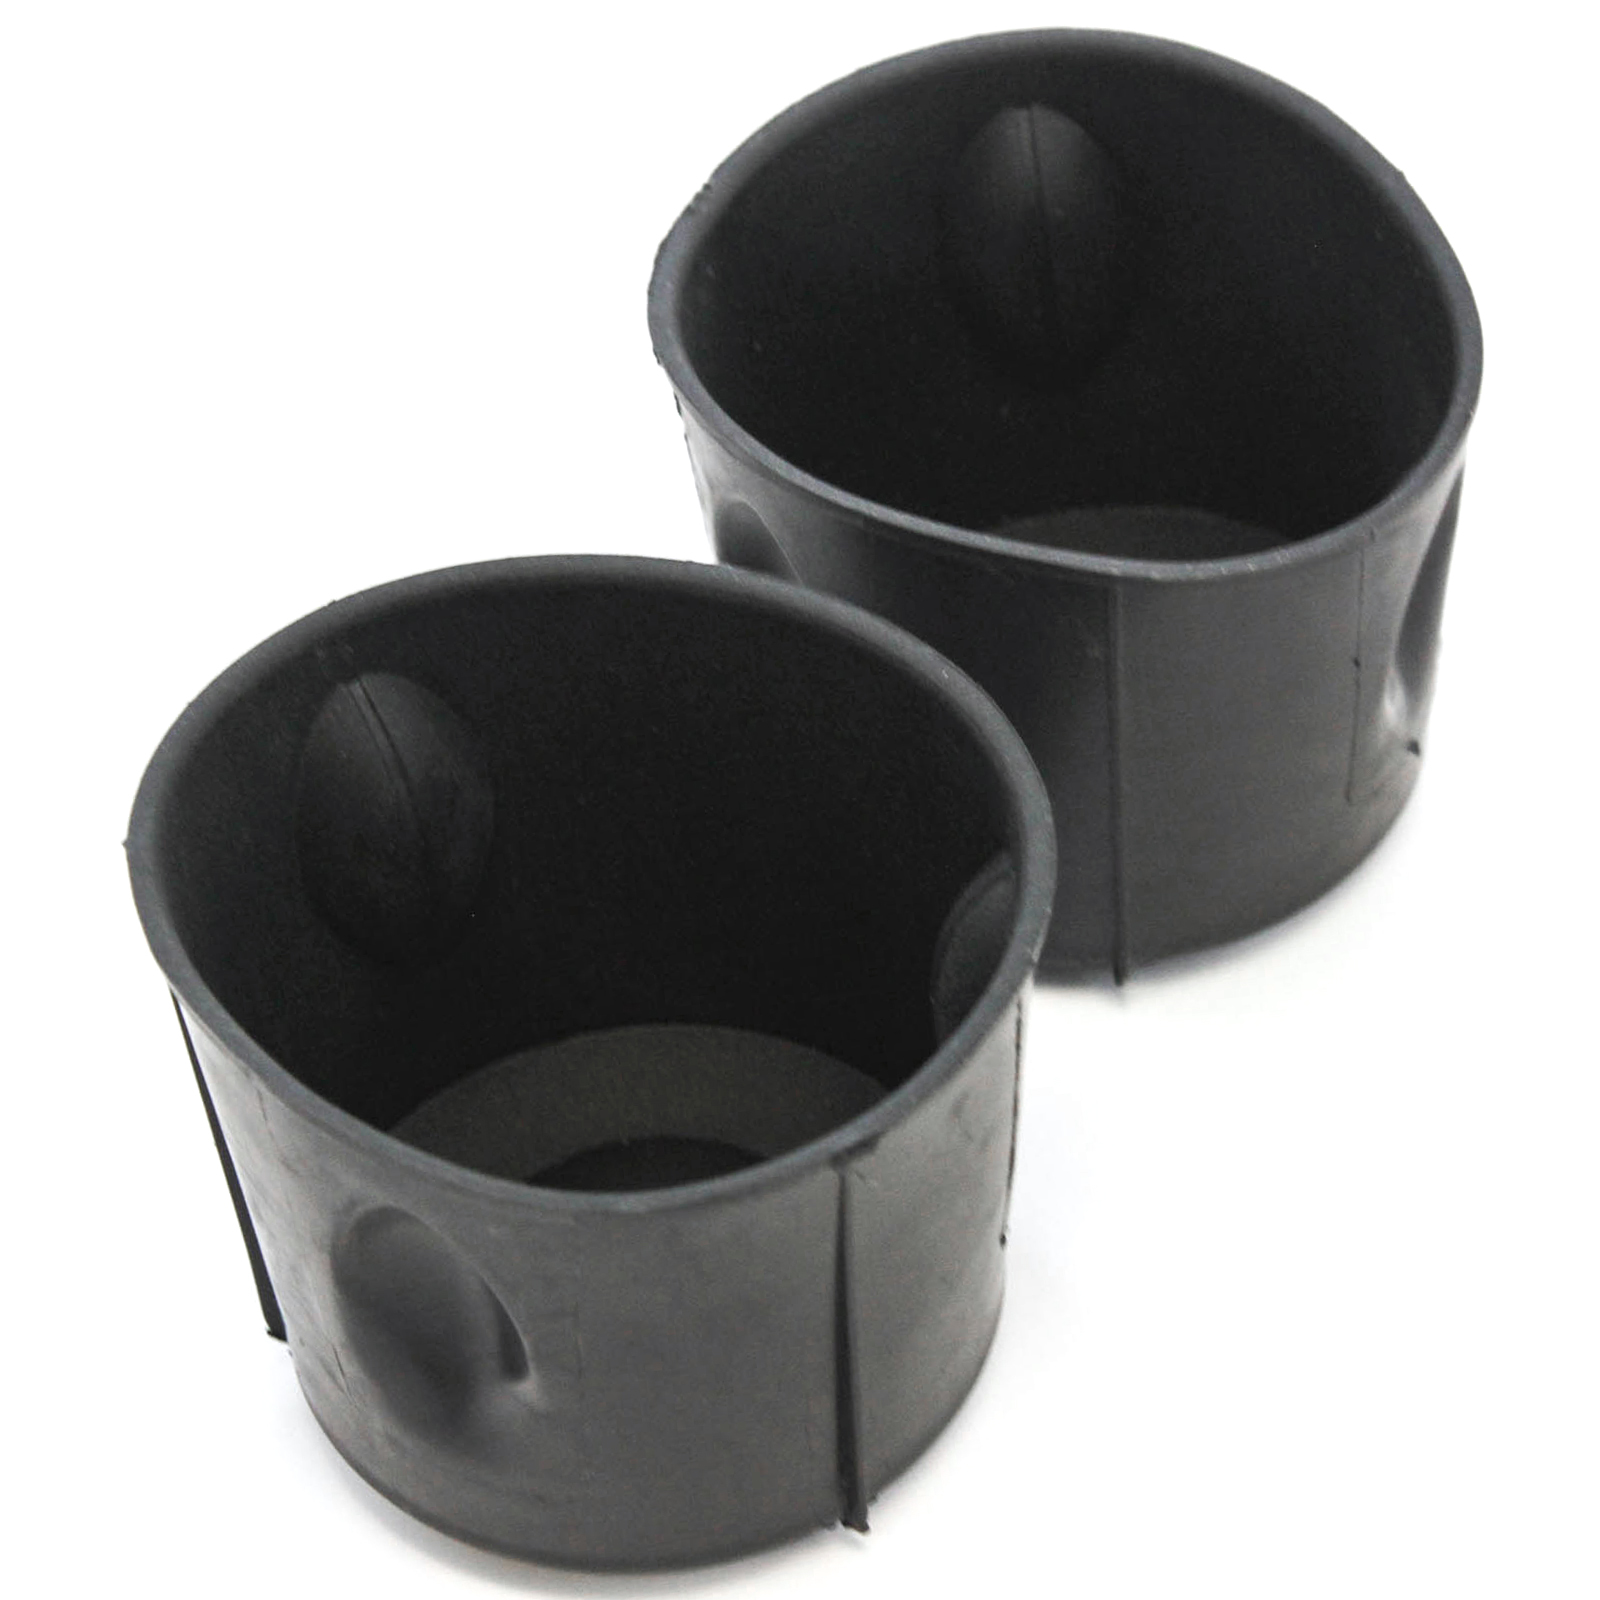 Front 2 Cup Holder Insert Liners 2010-15 fits Kia Optima Front Center Console